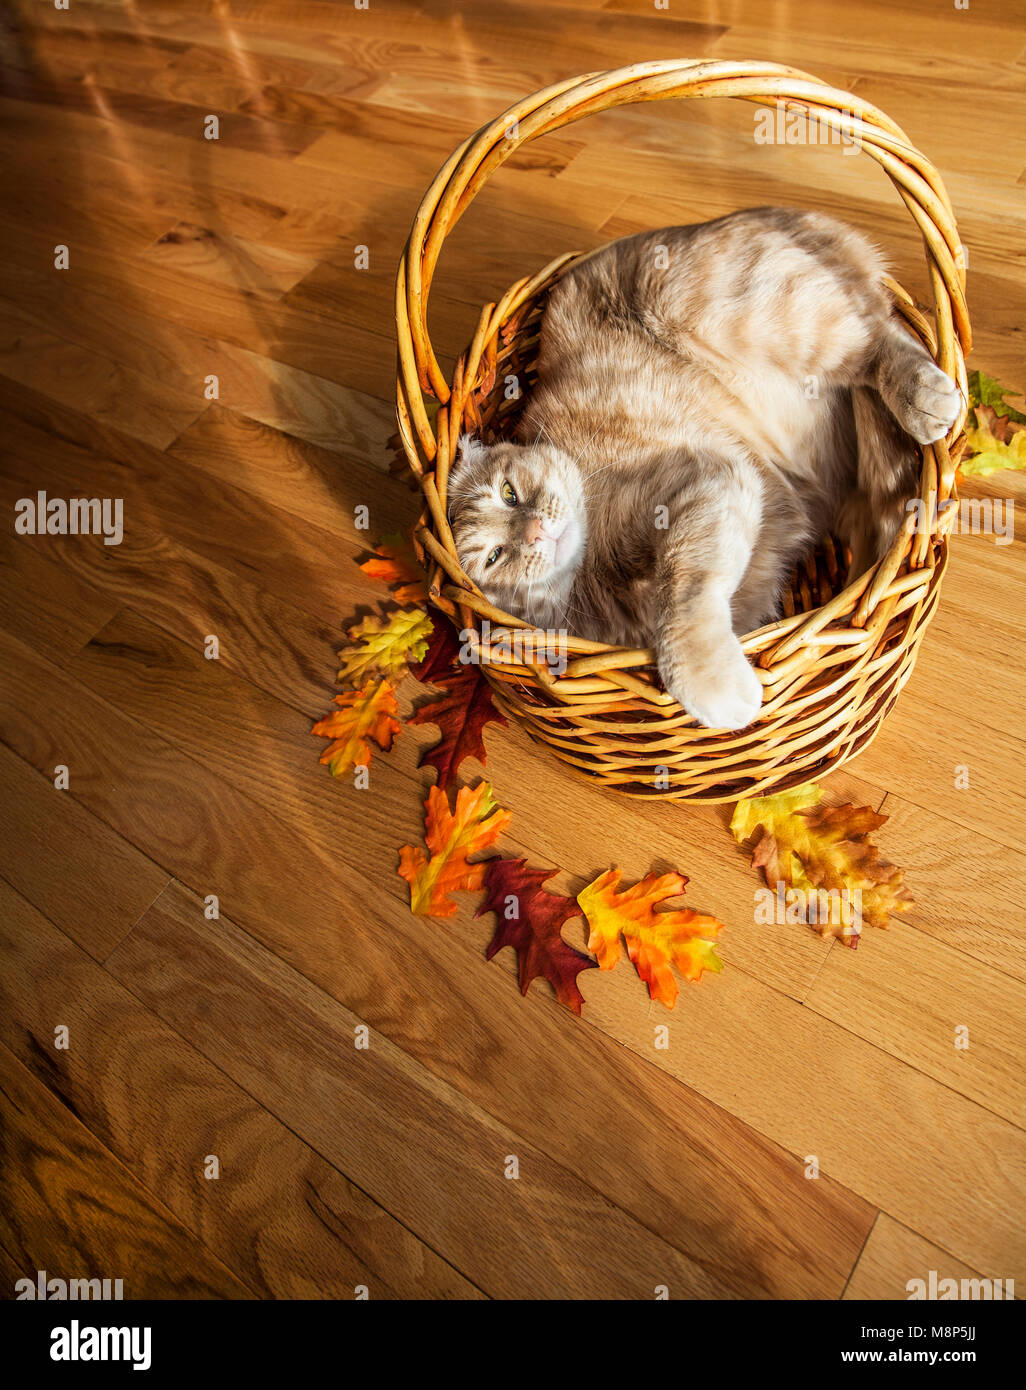 Domestic orange tabby cat in a basket, autumn leaves, New Jersey, USA, Pantone orange, Nov 2017,  FS 11.92 MB, animals Stock Photo